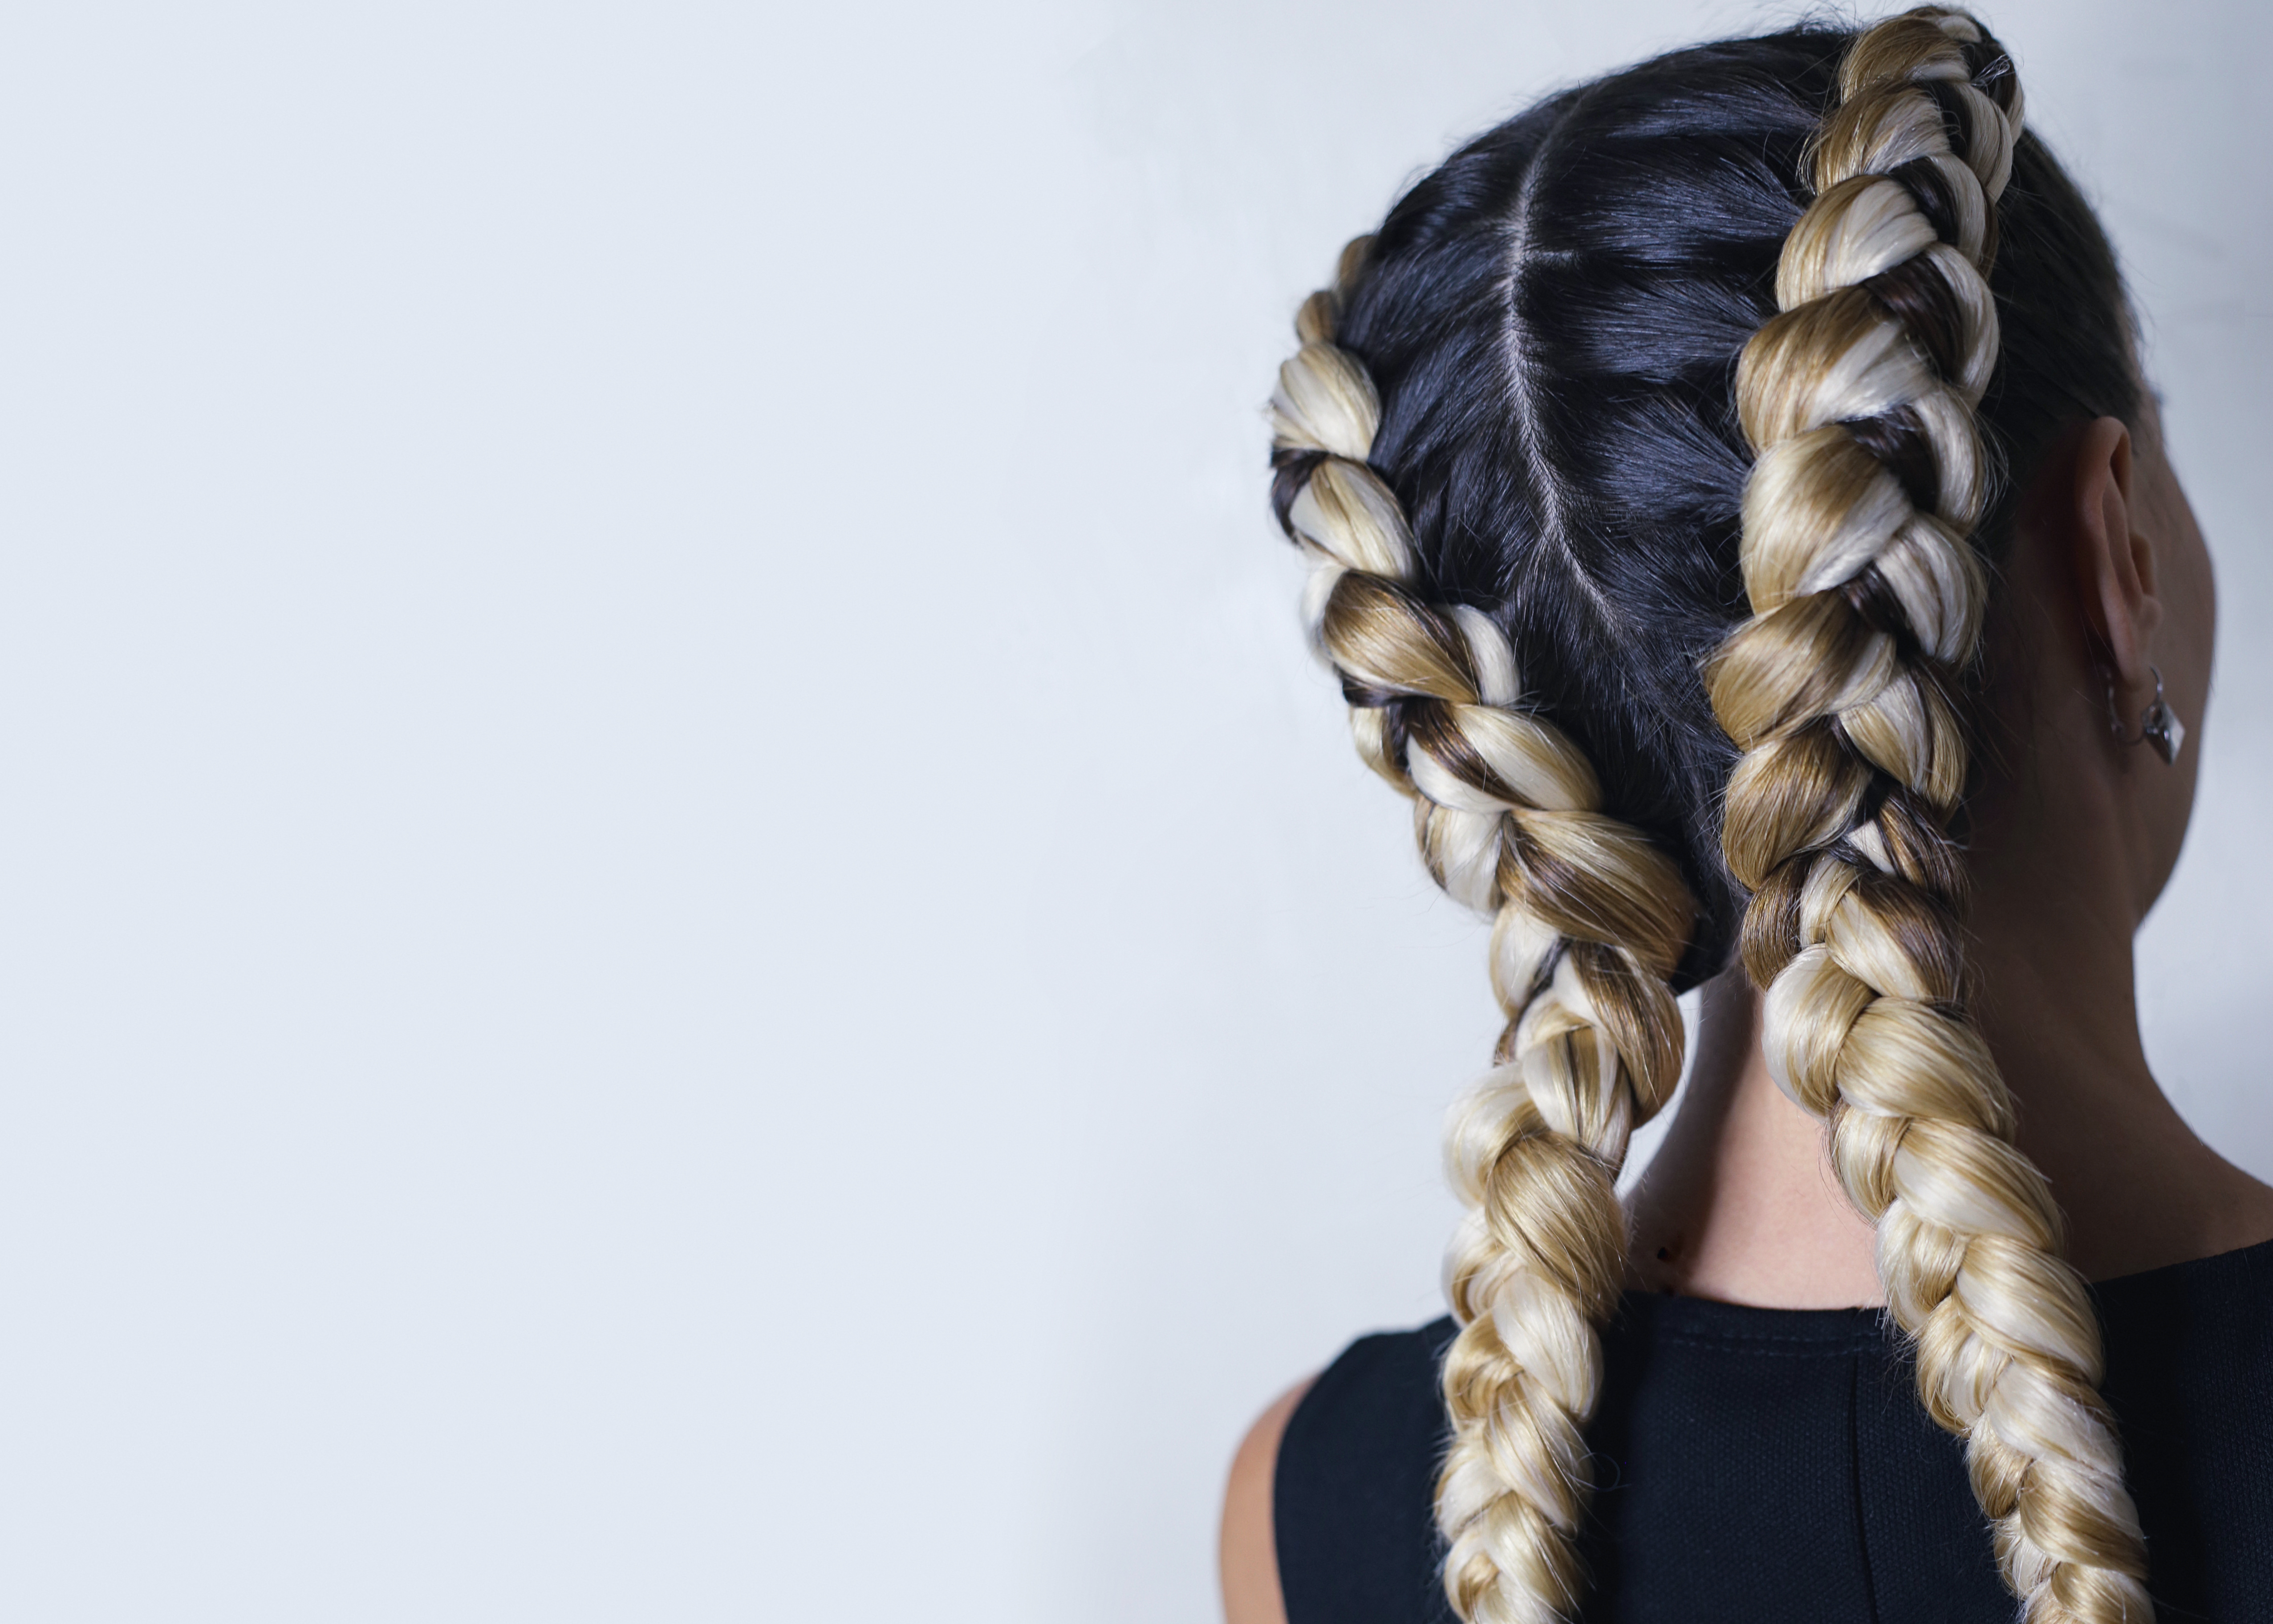 two thick braids of artificial hair, a youth hairdo, colored hai